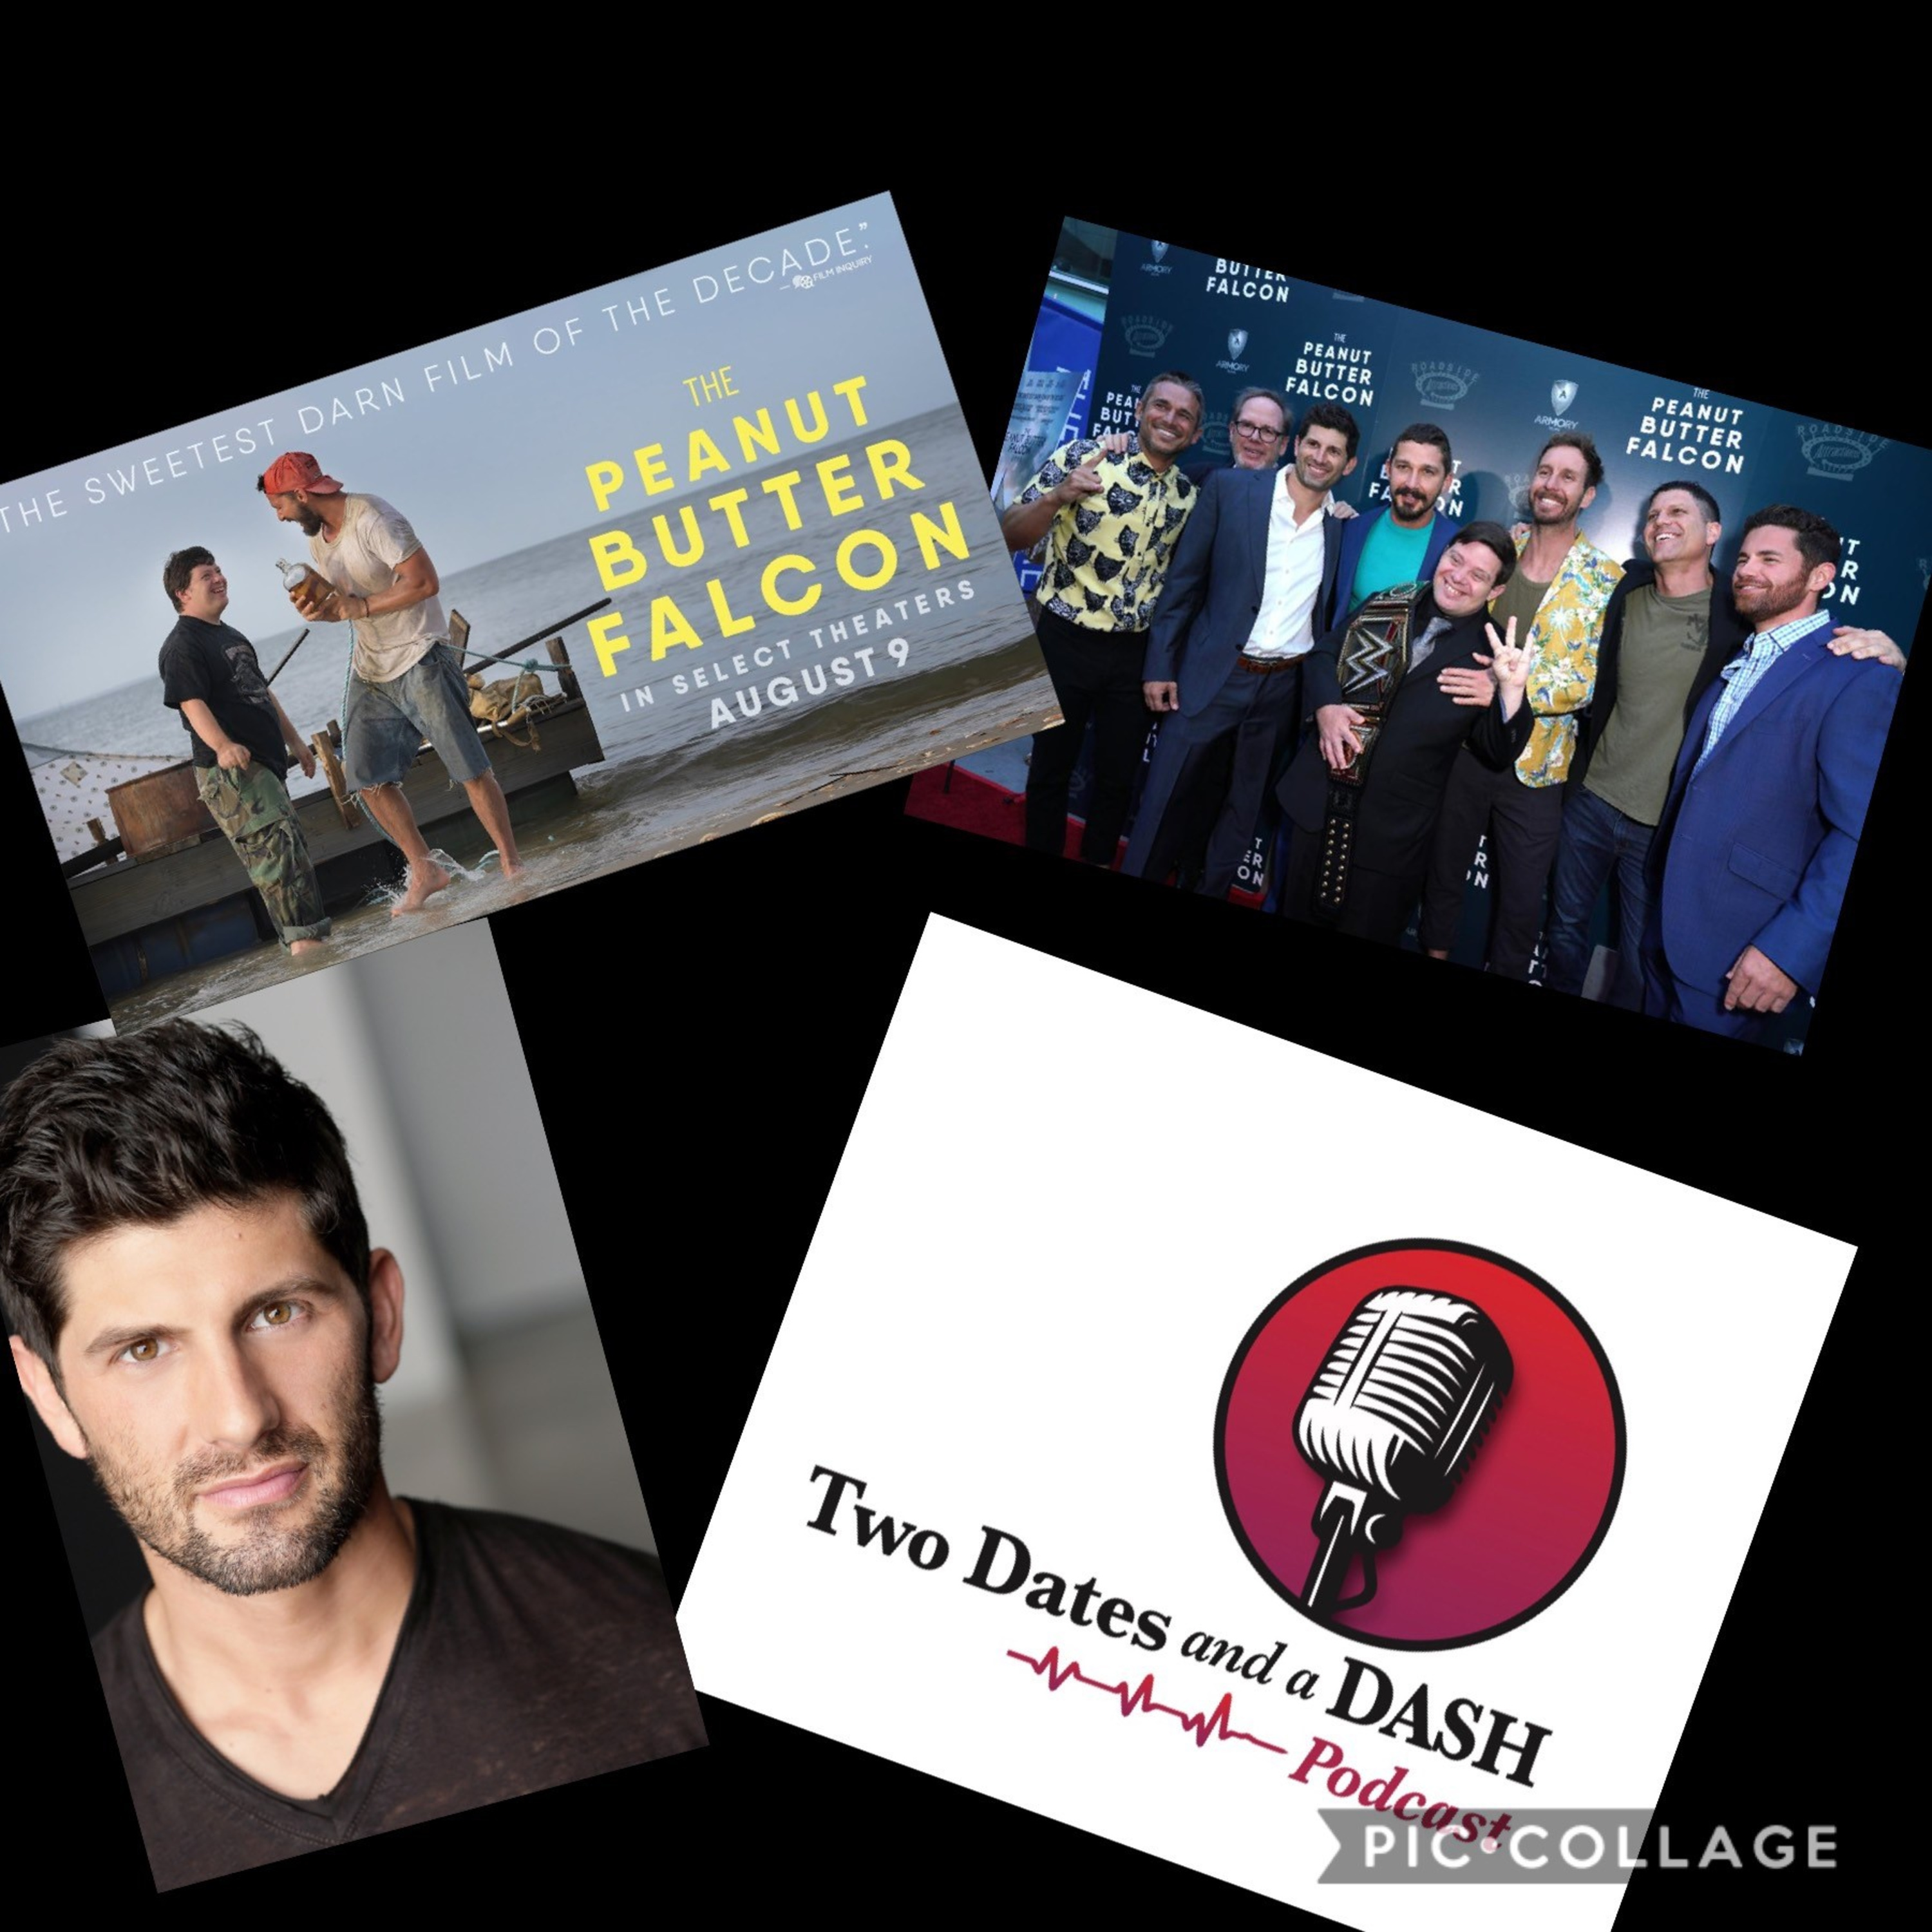 """Two Dates and a Dash Podcast Episode 52: Executive Producer of hit movie, """"The Peanut Butter Falcon"""", Aaron Scotti"""